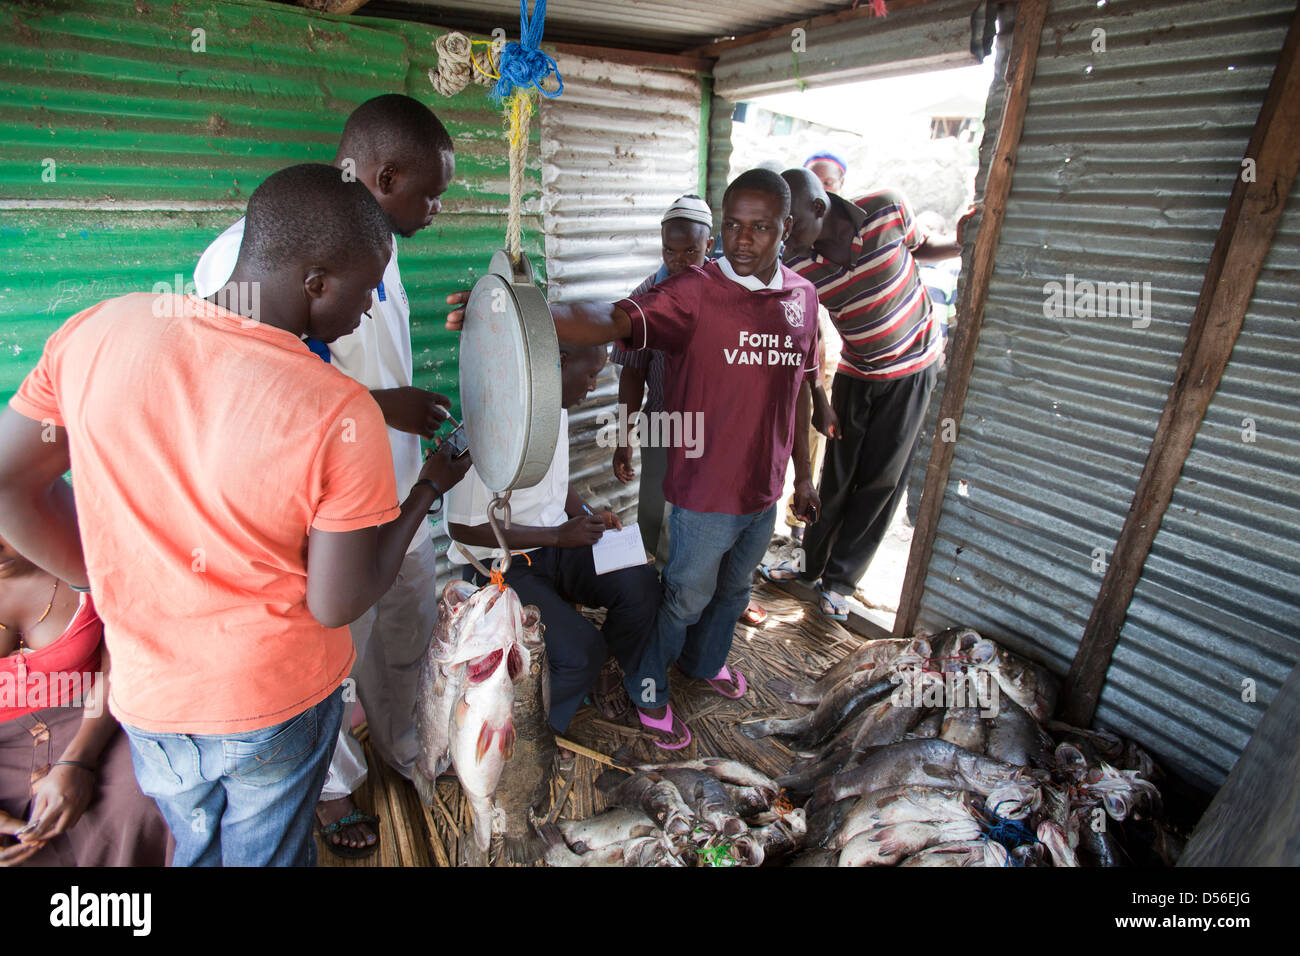 Fishermen weighing and trading Nile Perch (Lates niloticus) for export, Remba Island, Lake Victoria, Kenya. - Stock Image